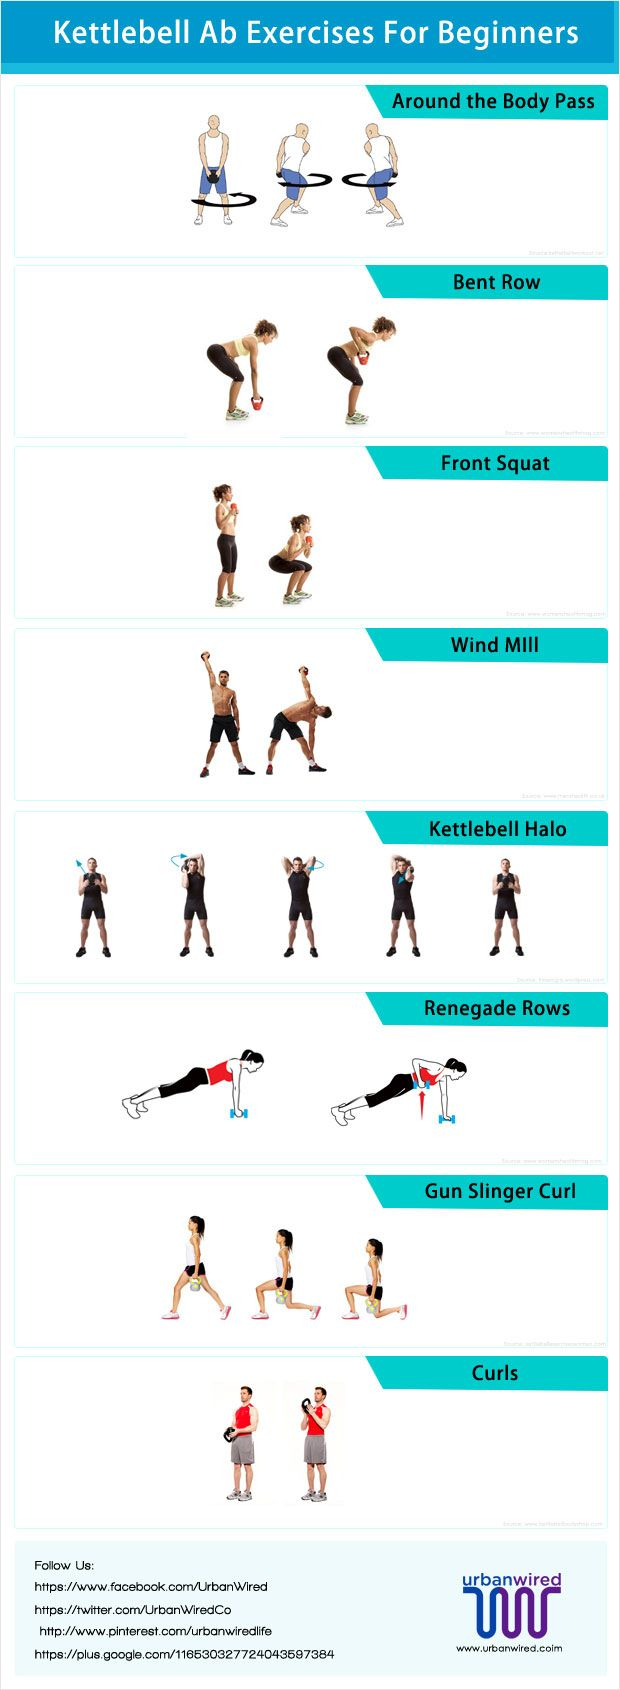 If you are looking for a very good resistance-training workout which will also help you lose weight. Kettlebell ab exercises are a good option for you.